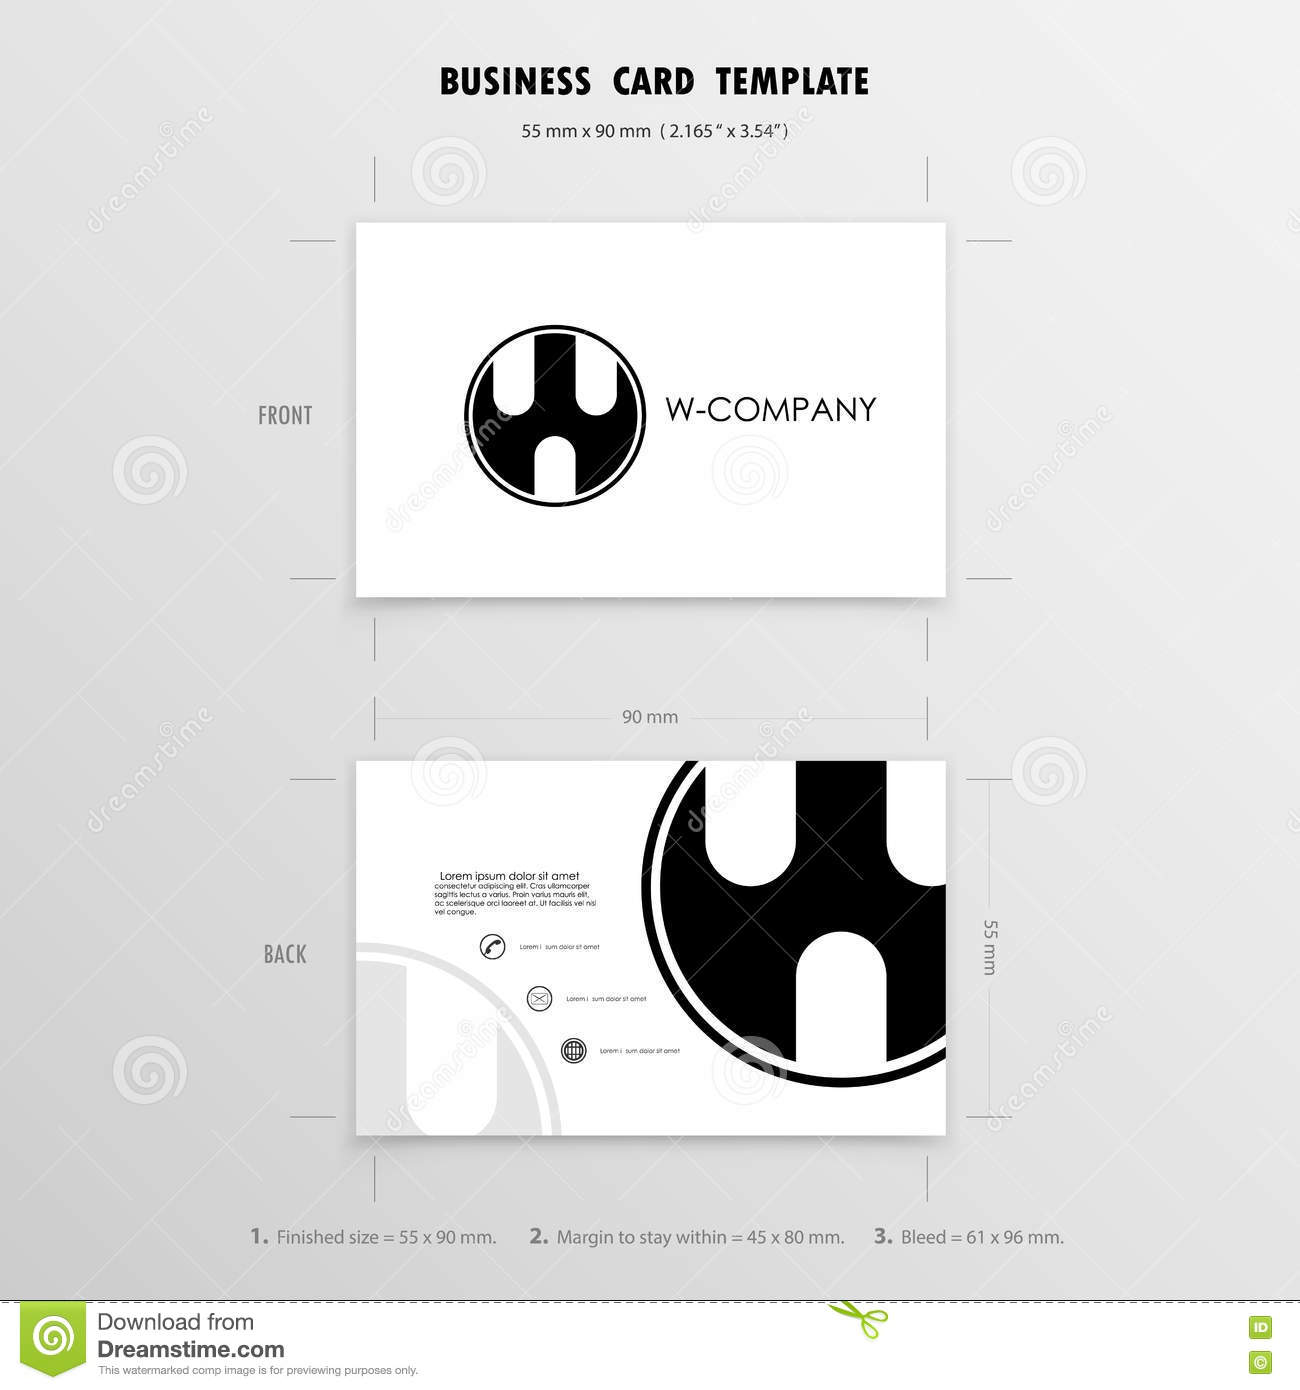 Business cards design template name cards symbol size 55 mm x download business cards design template name cards symbol size 55 mm x stock vector reheart Choice Image